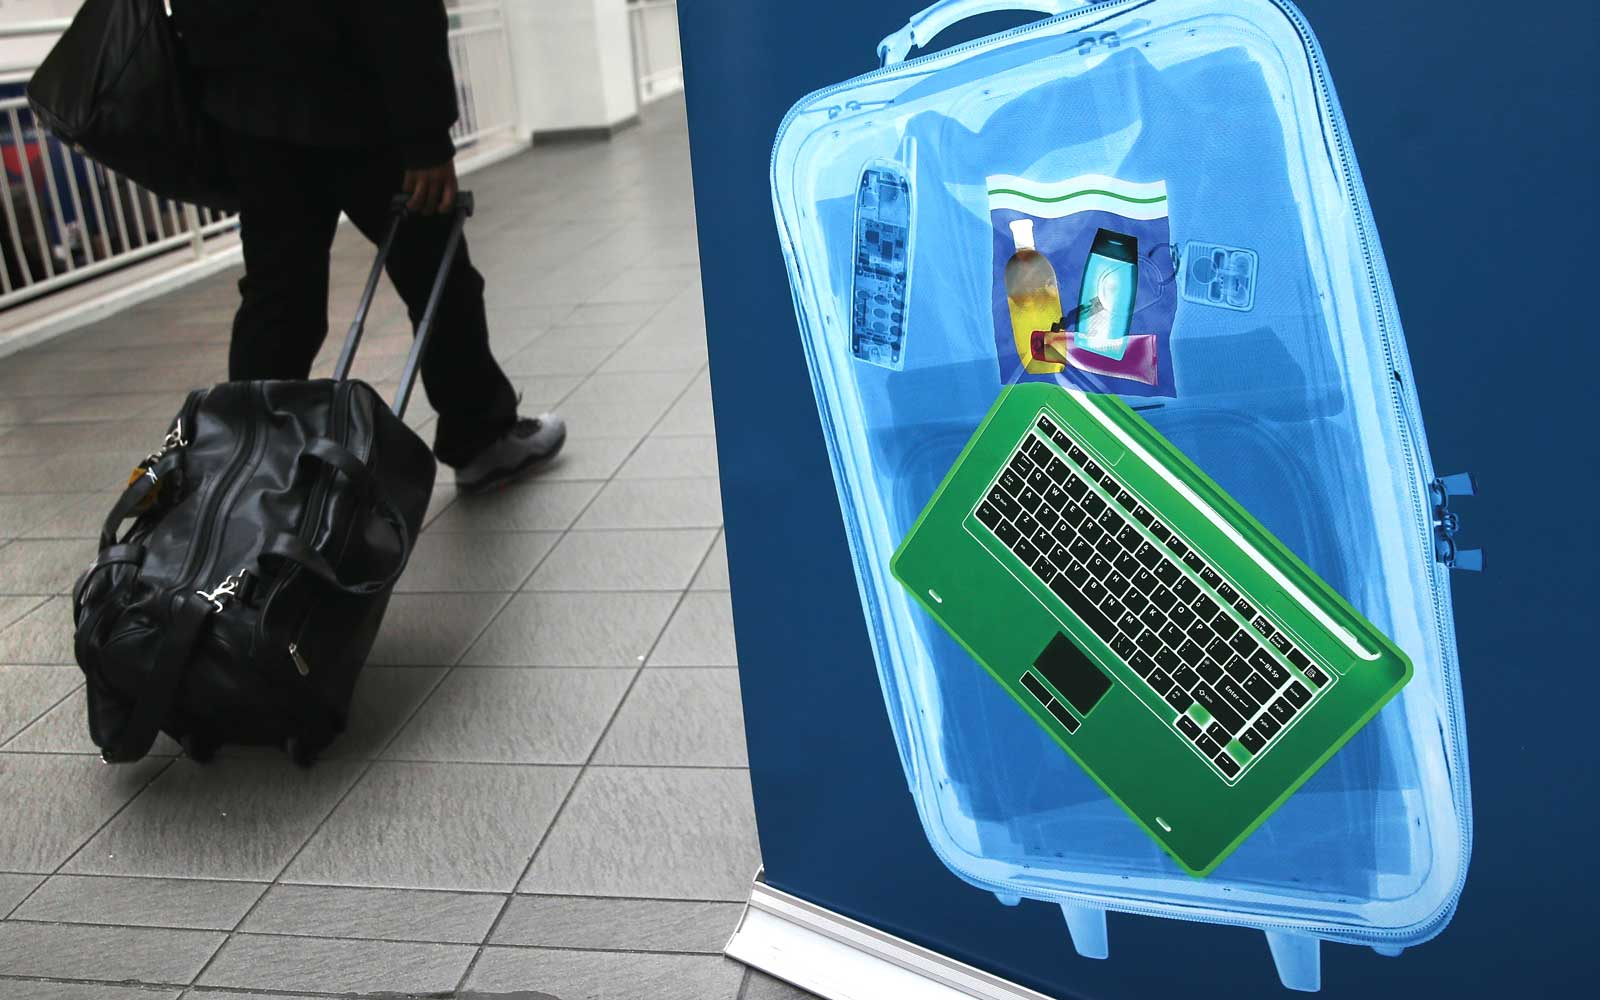 What It's Like to Travel From the Middle East During the Electronics Ban